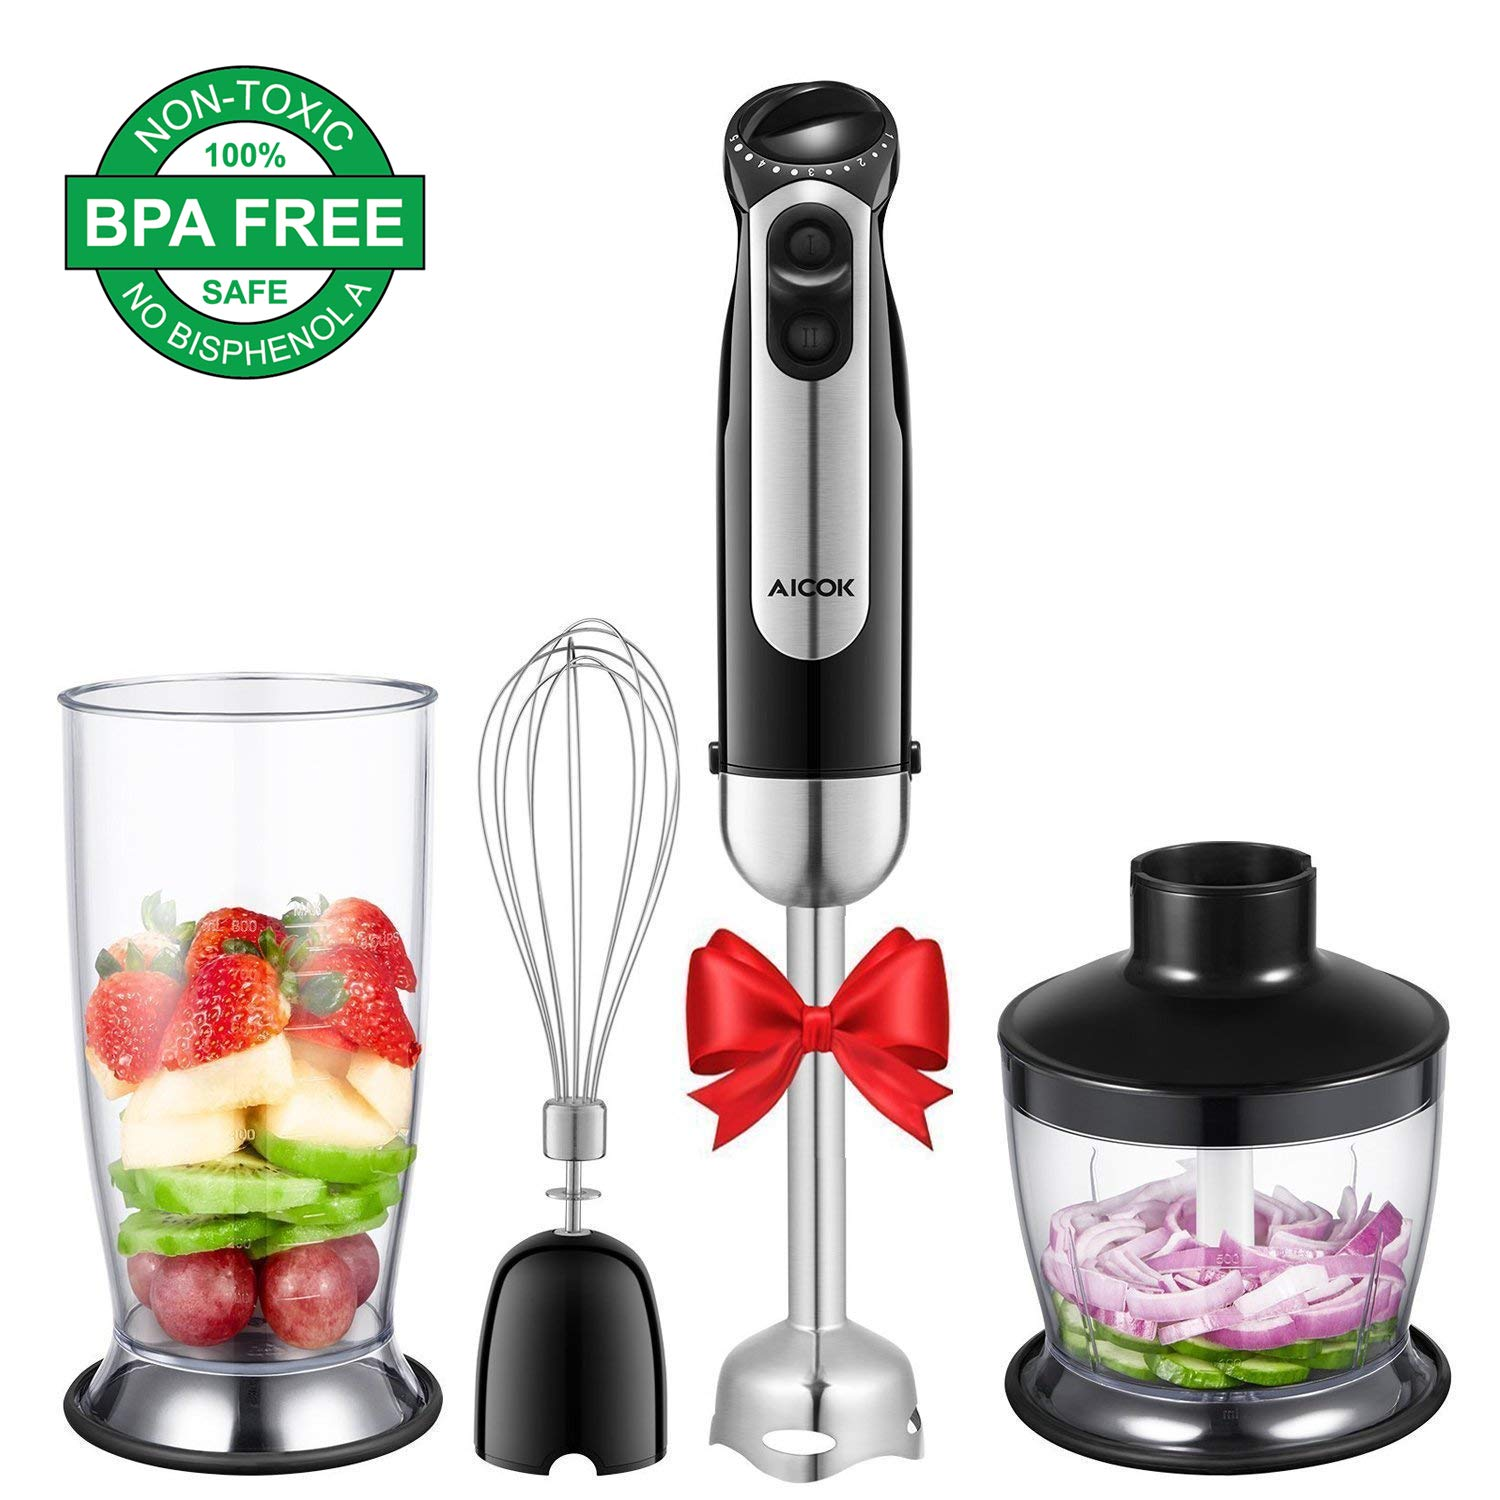 Hand Blender, 4 in 1 Immersion Blender Includes 800ml Beaker, 500ml Chopper, Egg Whisk, 10 Speeds(5x2) Multifunctional Blender for Smoothies, Soups, 304 Stainless Steel Shaft and Blades, BPA Free by AICOK